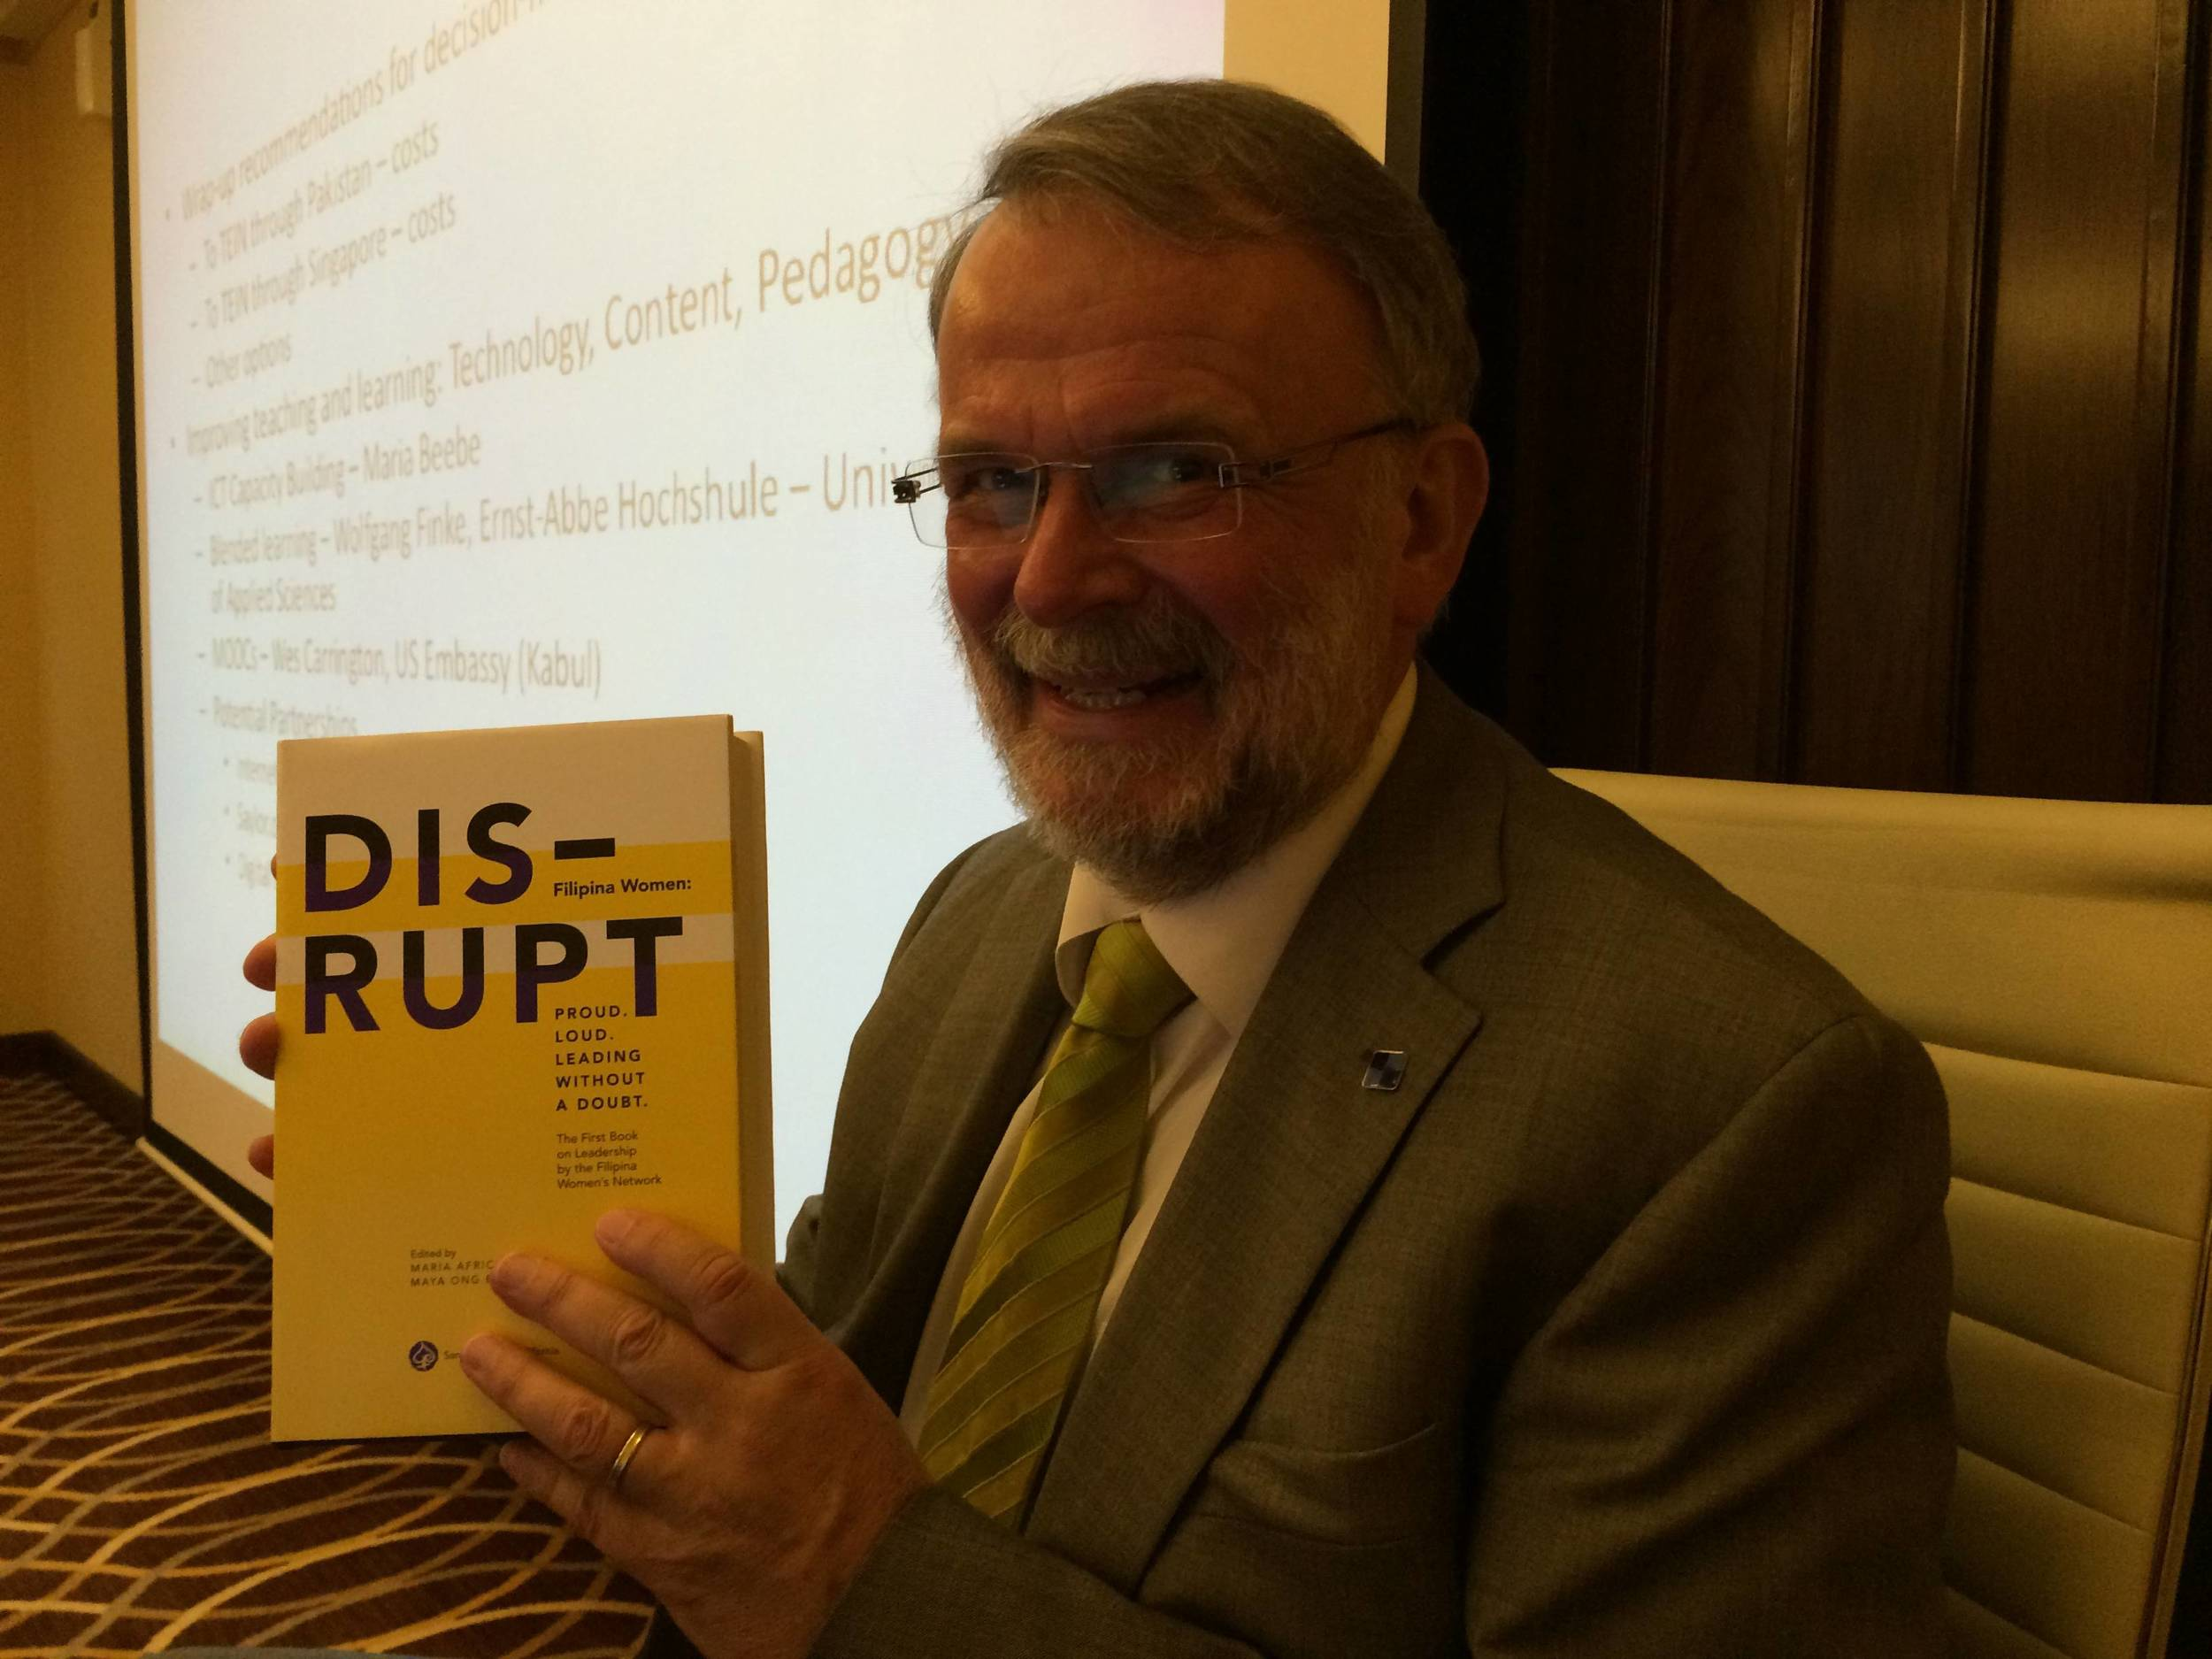 Congratulations from Dr. Walter Kaffenberger at the AfgREN workshop at Sheraton Deira in Dubai Oct 12-14, 2014. Maria Beebe, one of the editors is also co-Director for this set of Advanced Research Workshop grant from NATO.